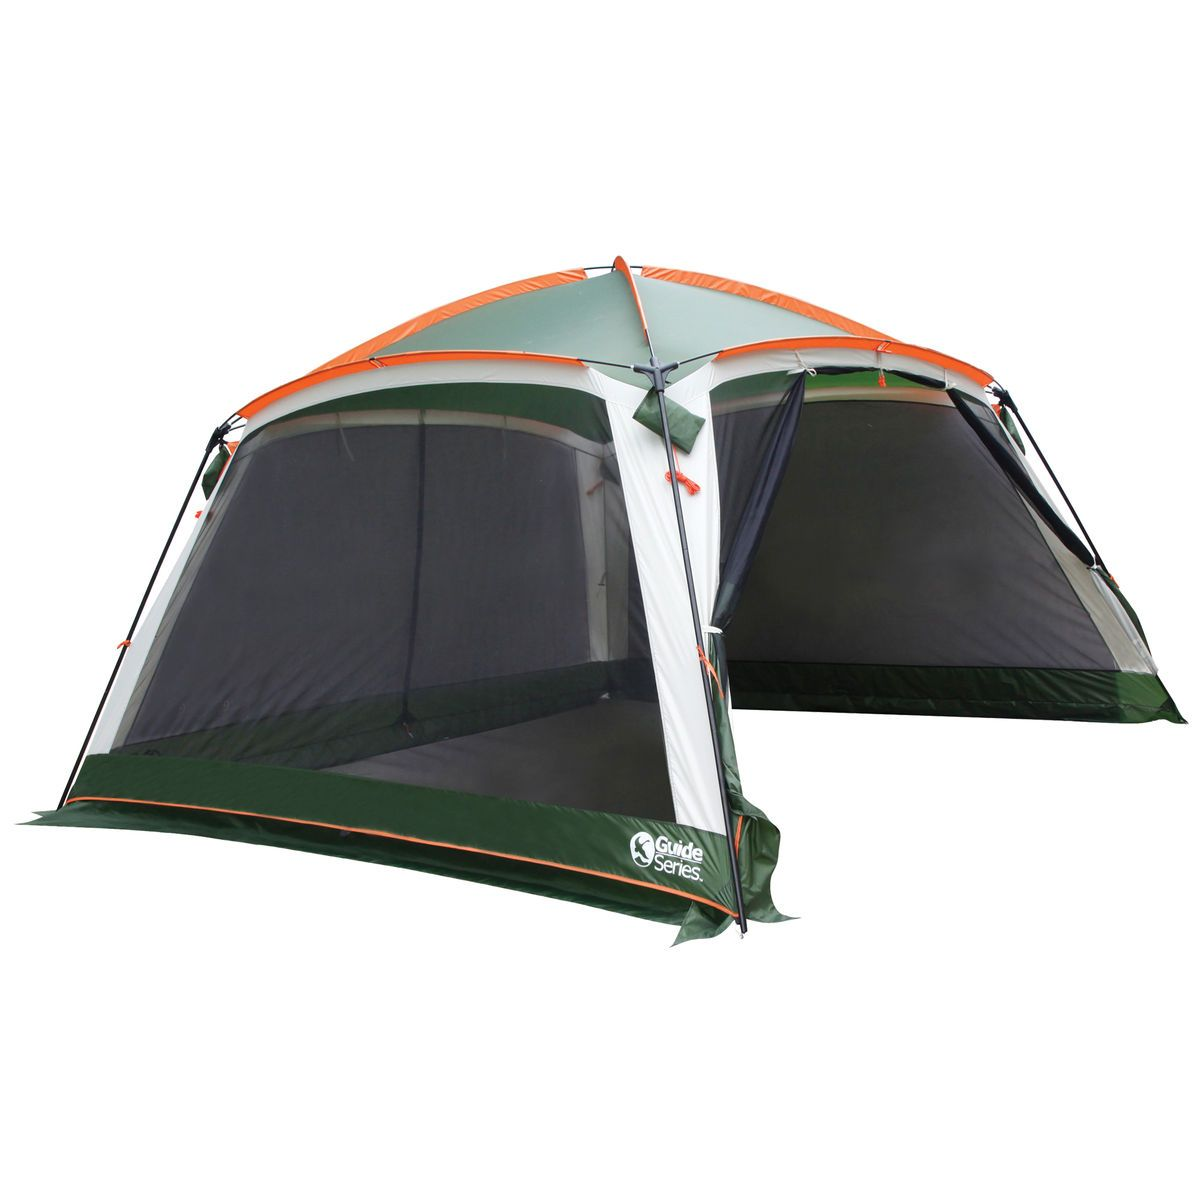 Gander mountain guide series 8 person family tent | encore.